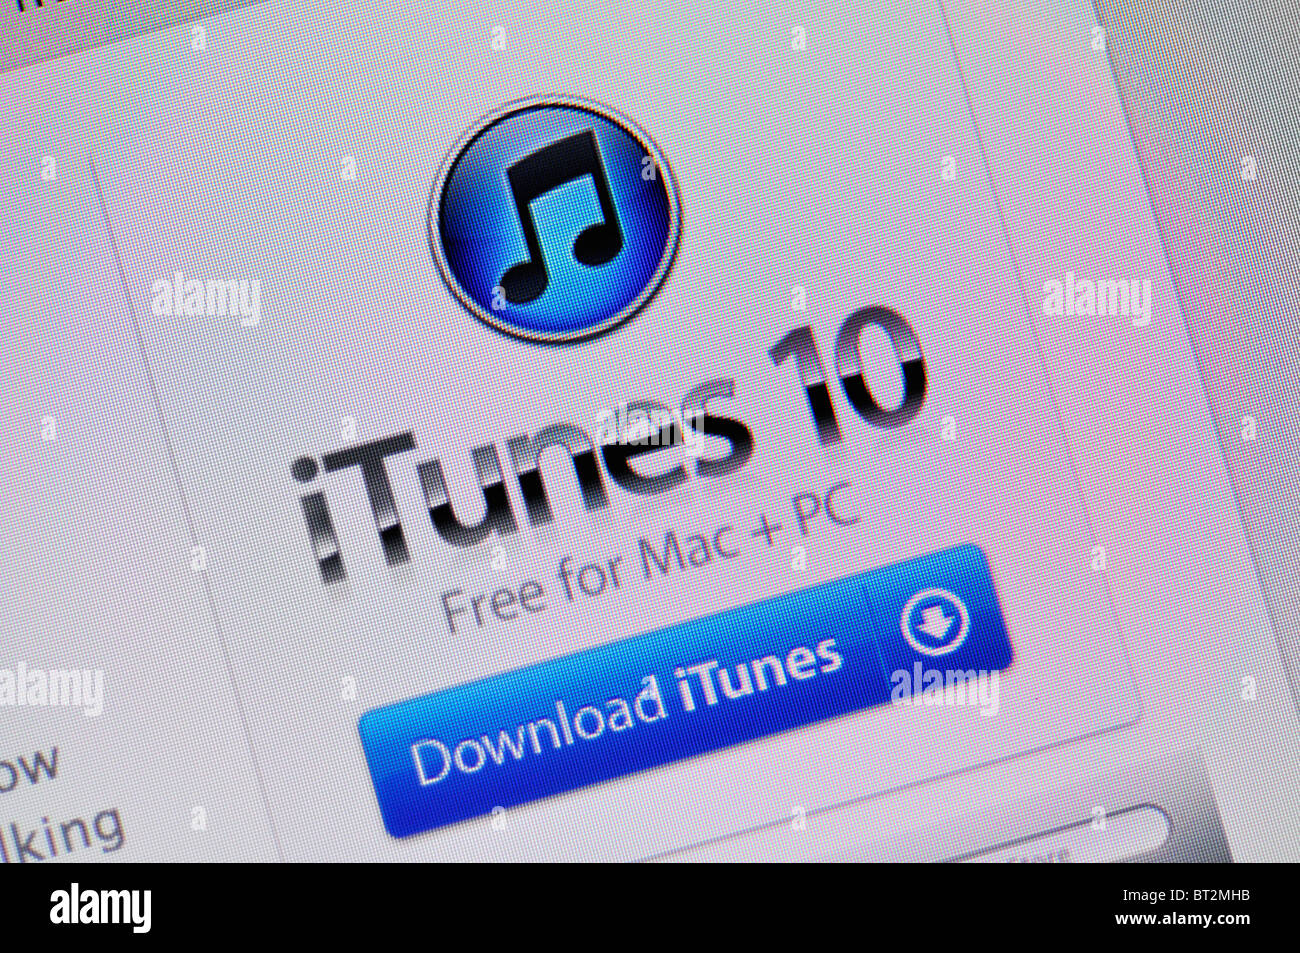 Itunes Computer Stock Photos & Itunes Computer Stock Images - Alamy